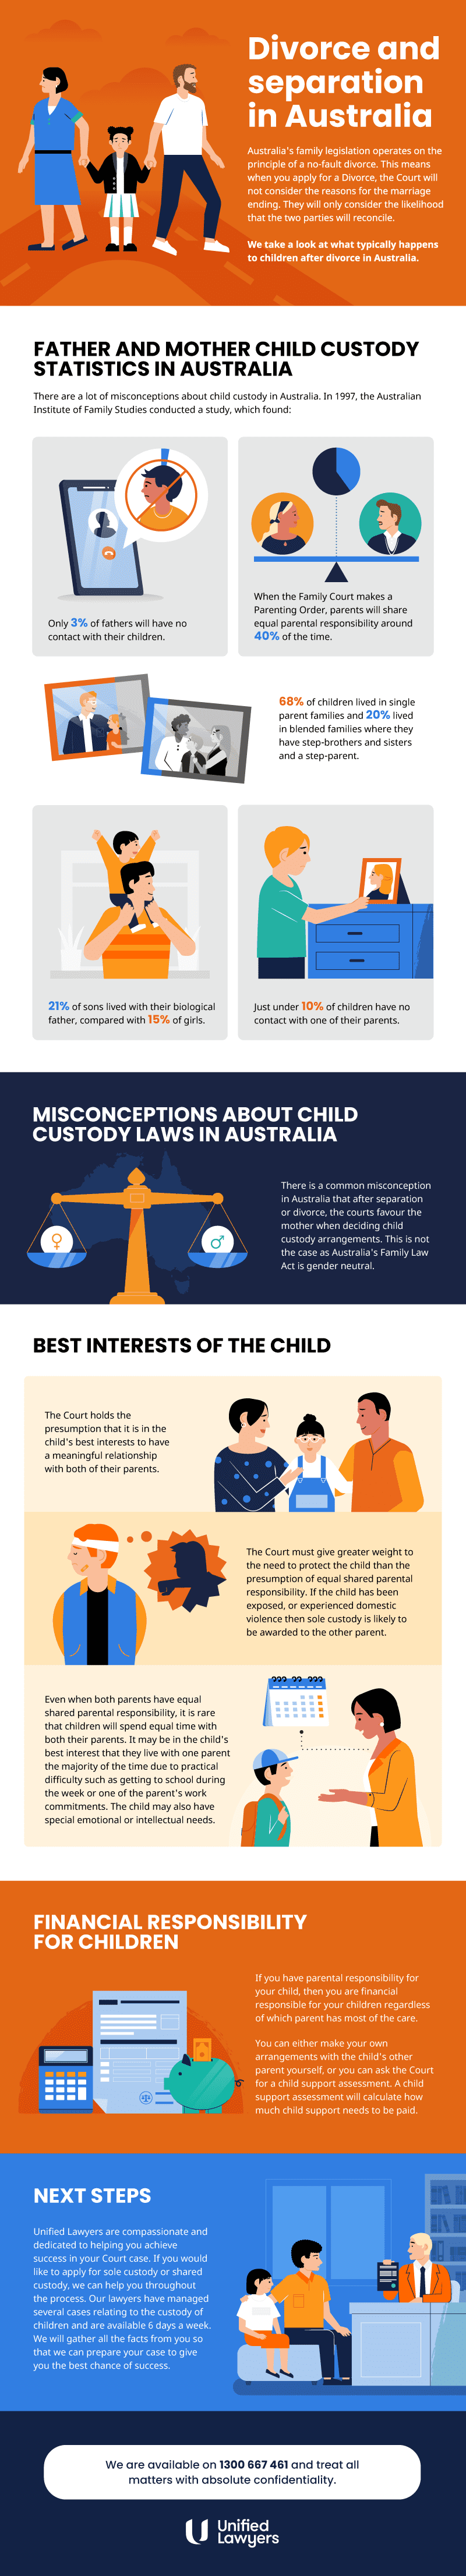 Father and mother child custody statistics infographic